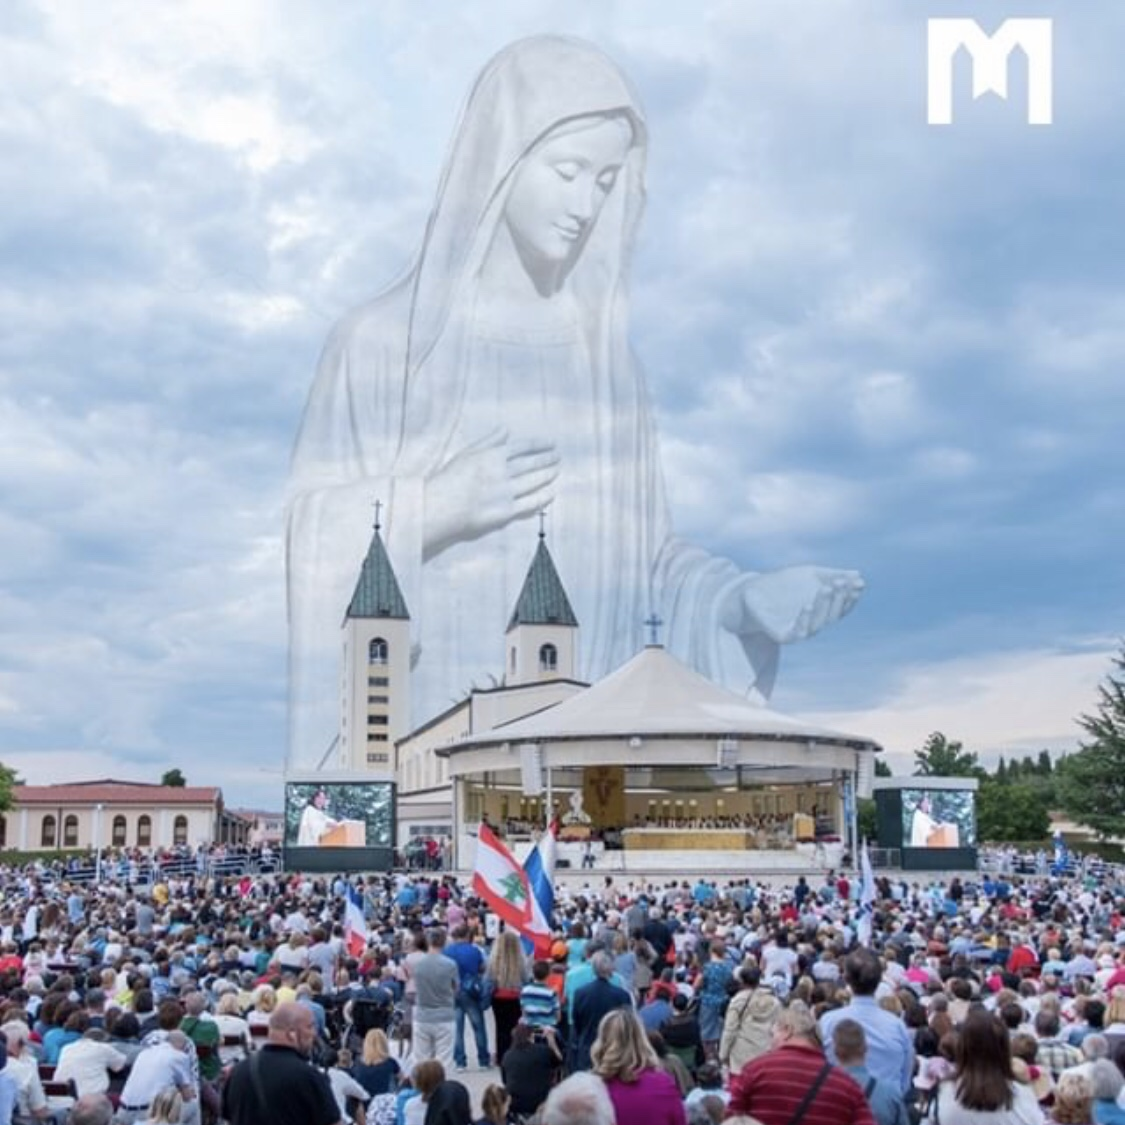 December 2, 2019 Message from Medjugorje